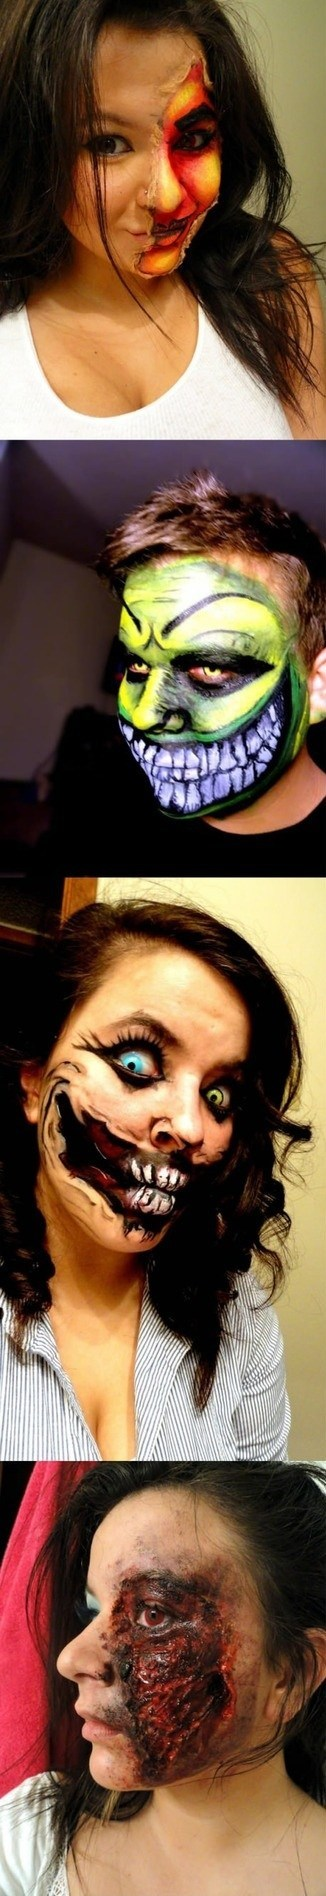 halloween costume face paint - 6720650752